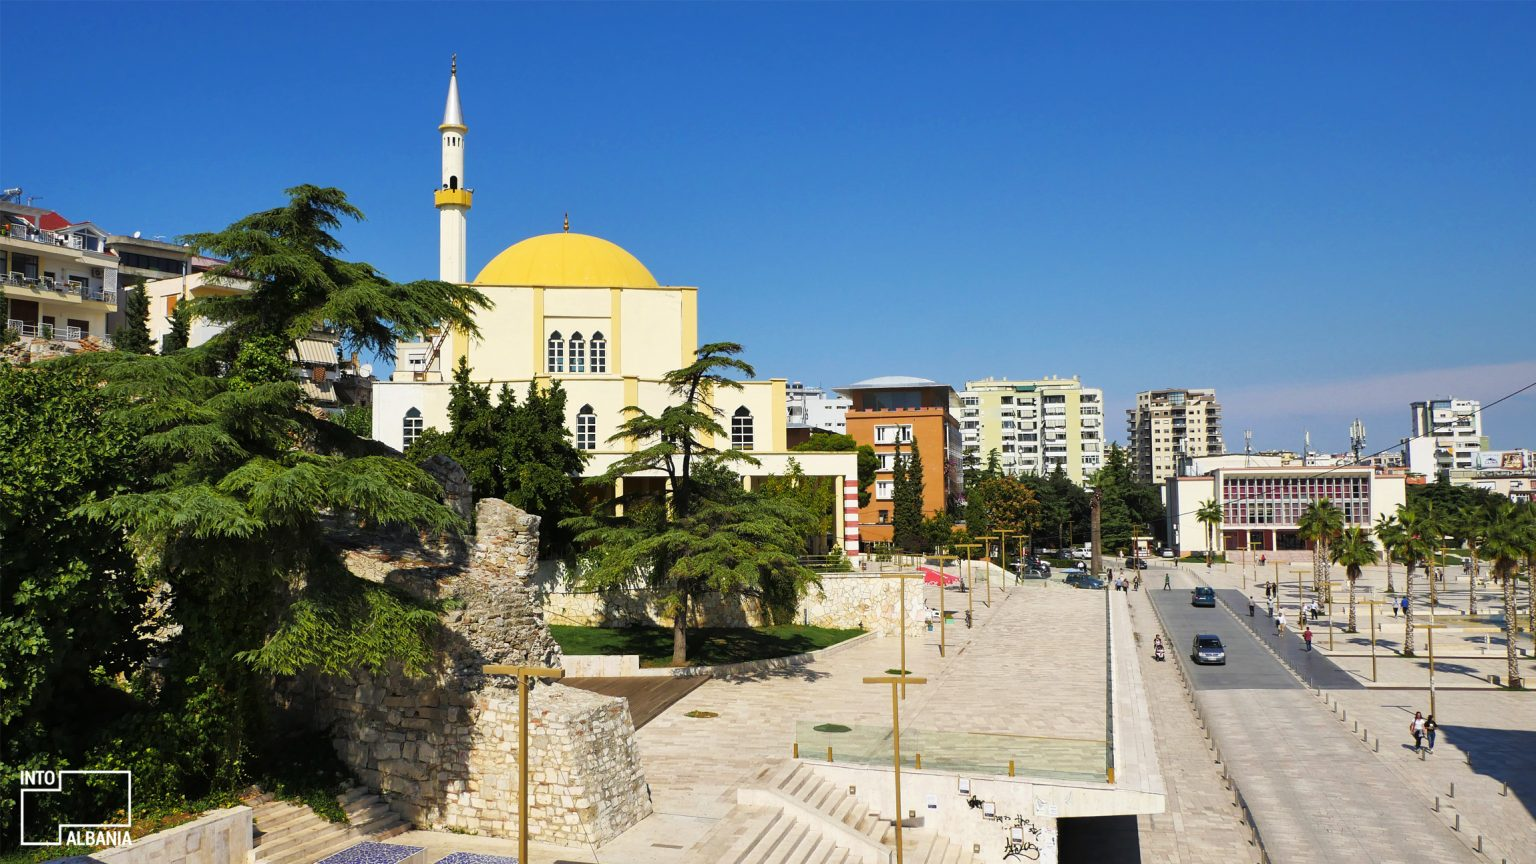 The Grand Mosque at the Illyria Square in Durrës, photo by IntoAlbania.